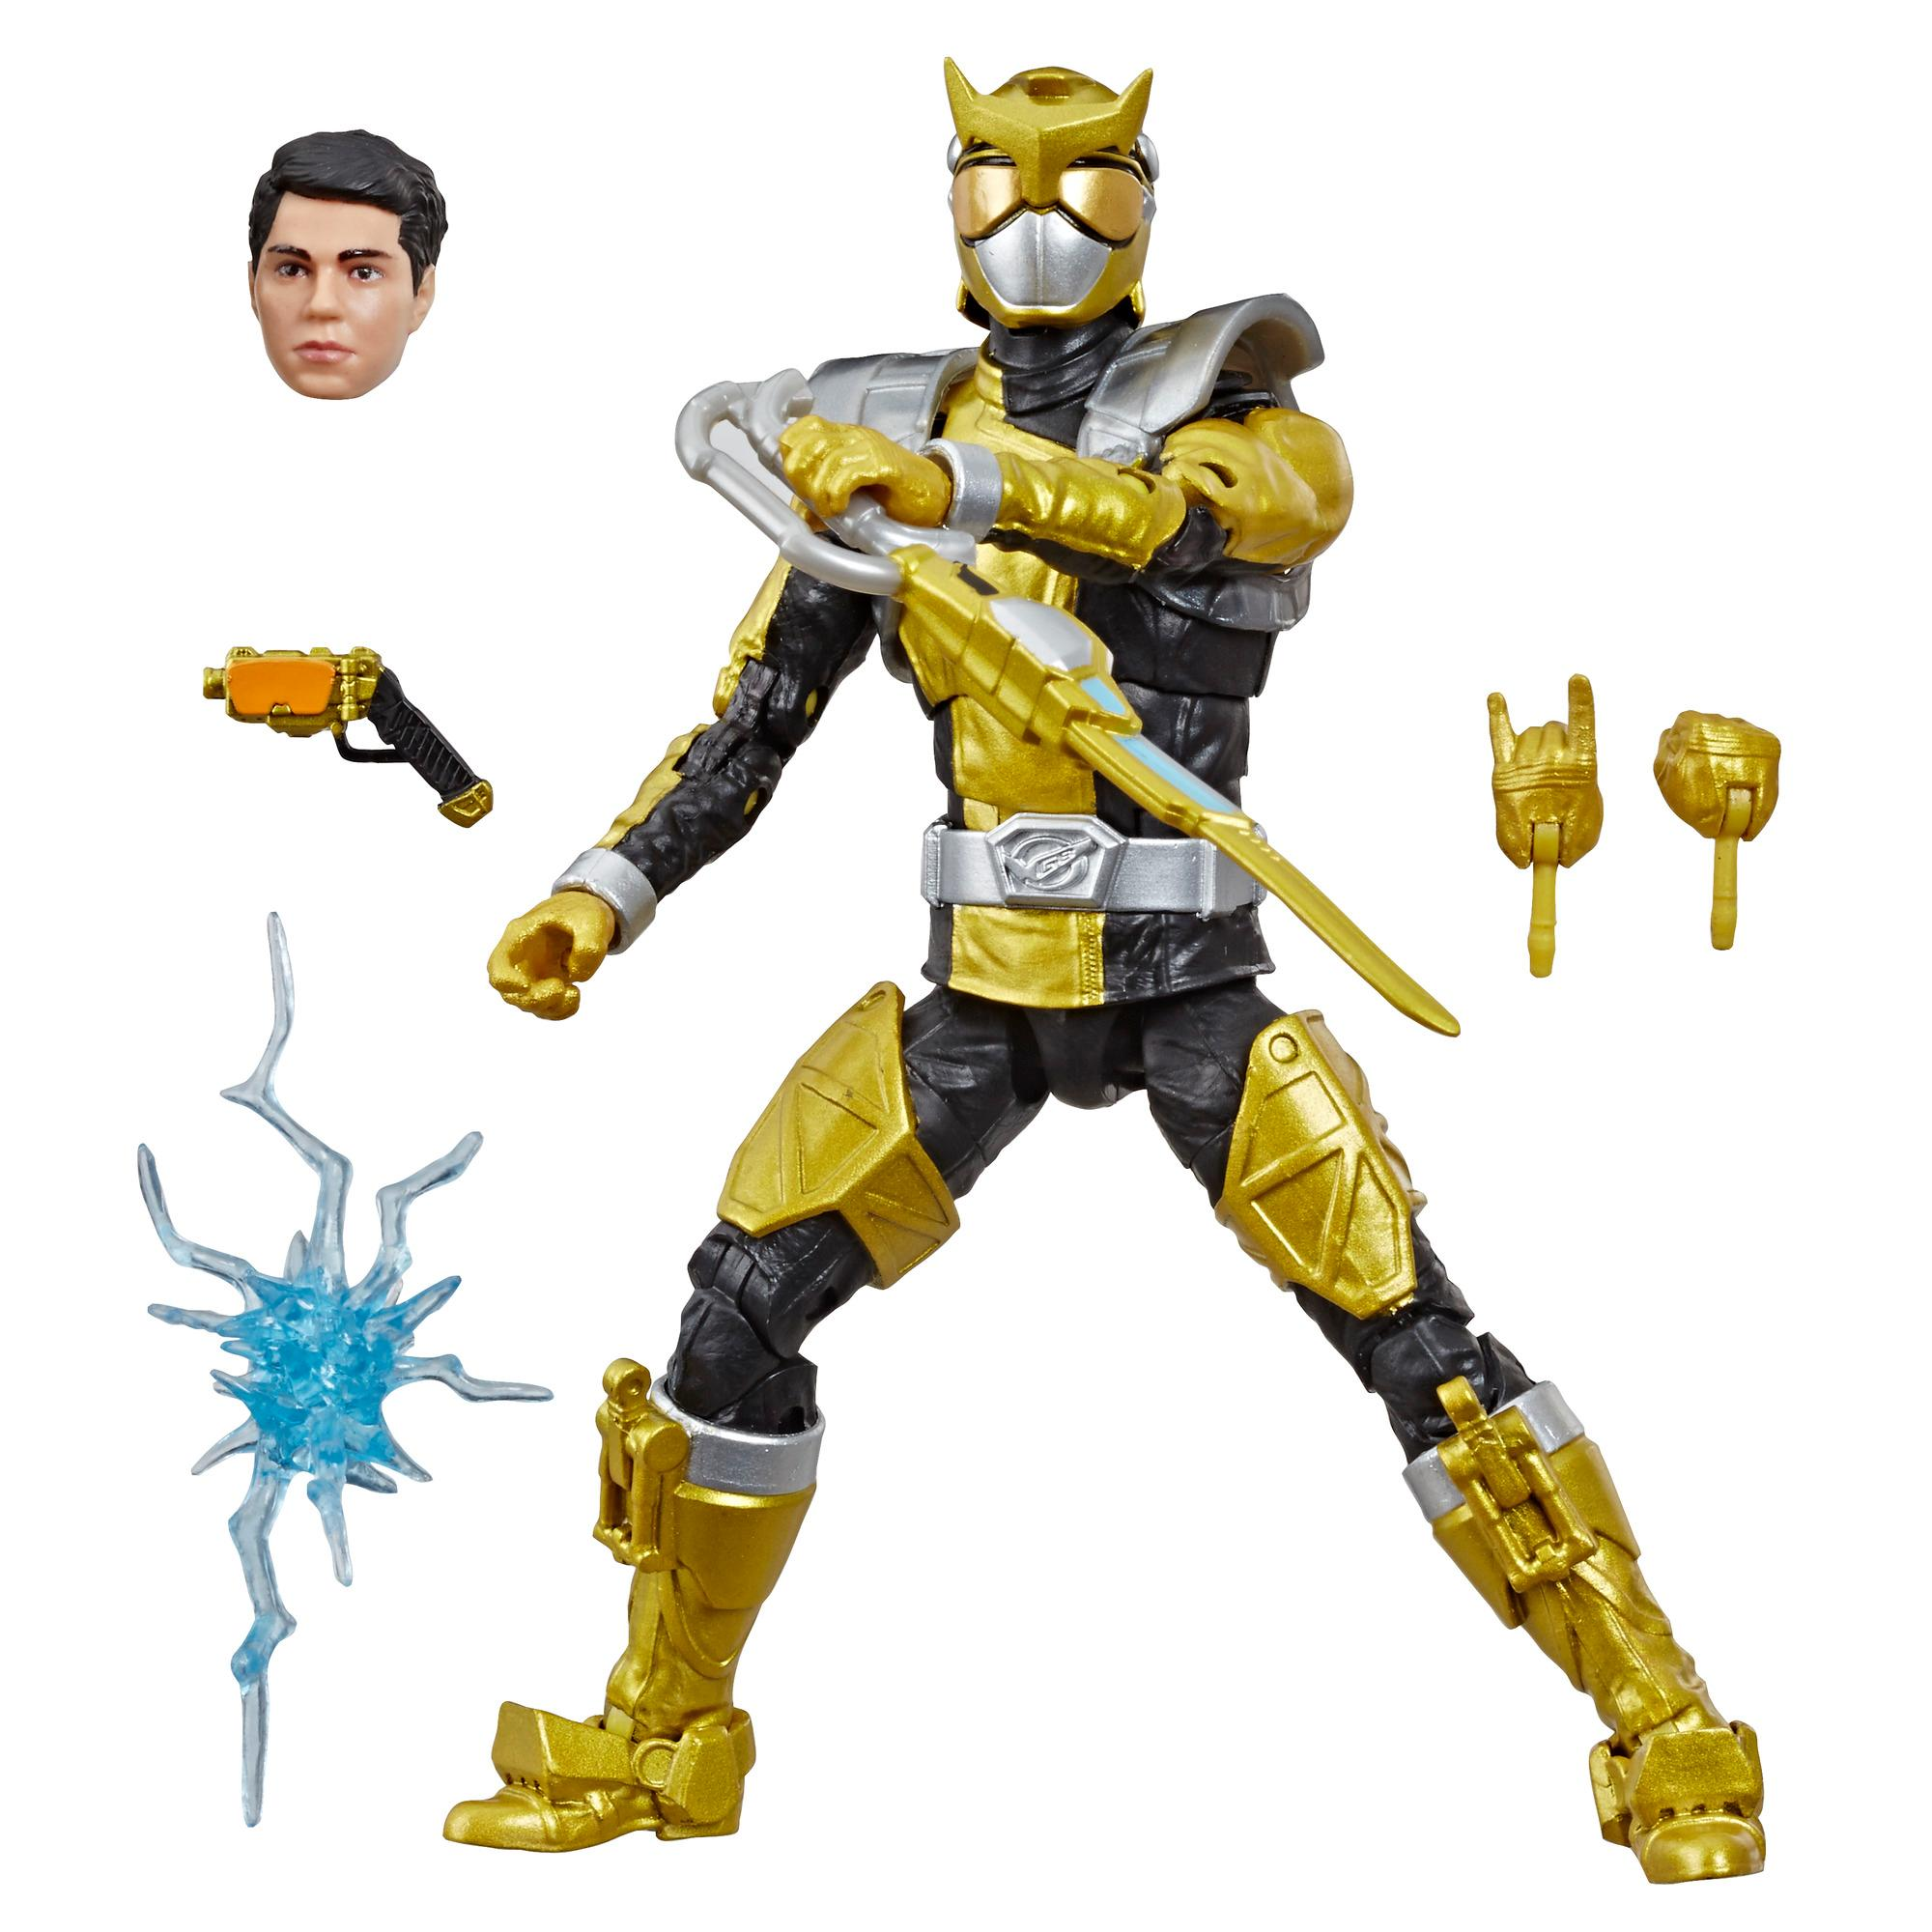 Power Rangers Lightning Collection Beast Morphers Gold Ranger Figure